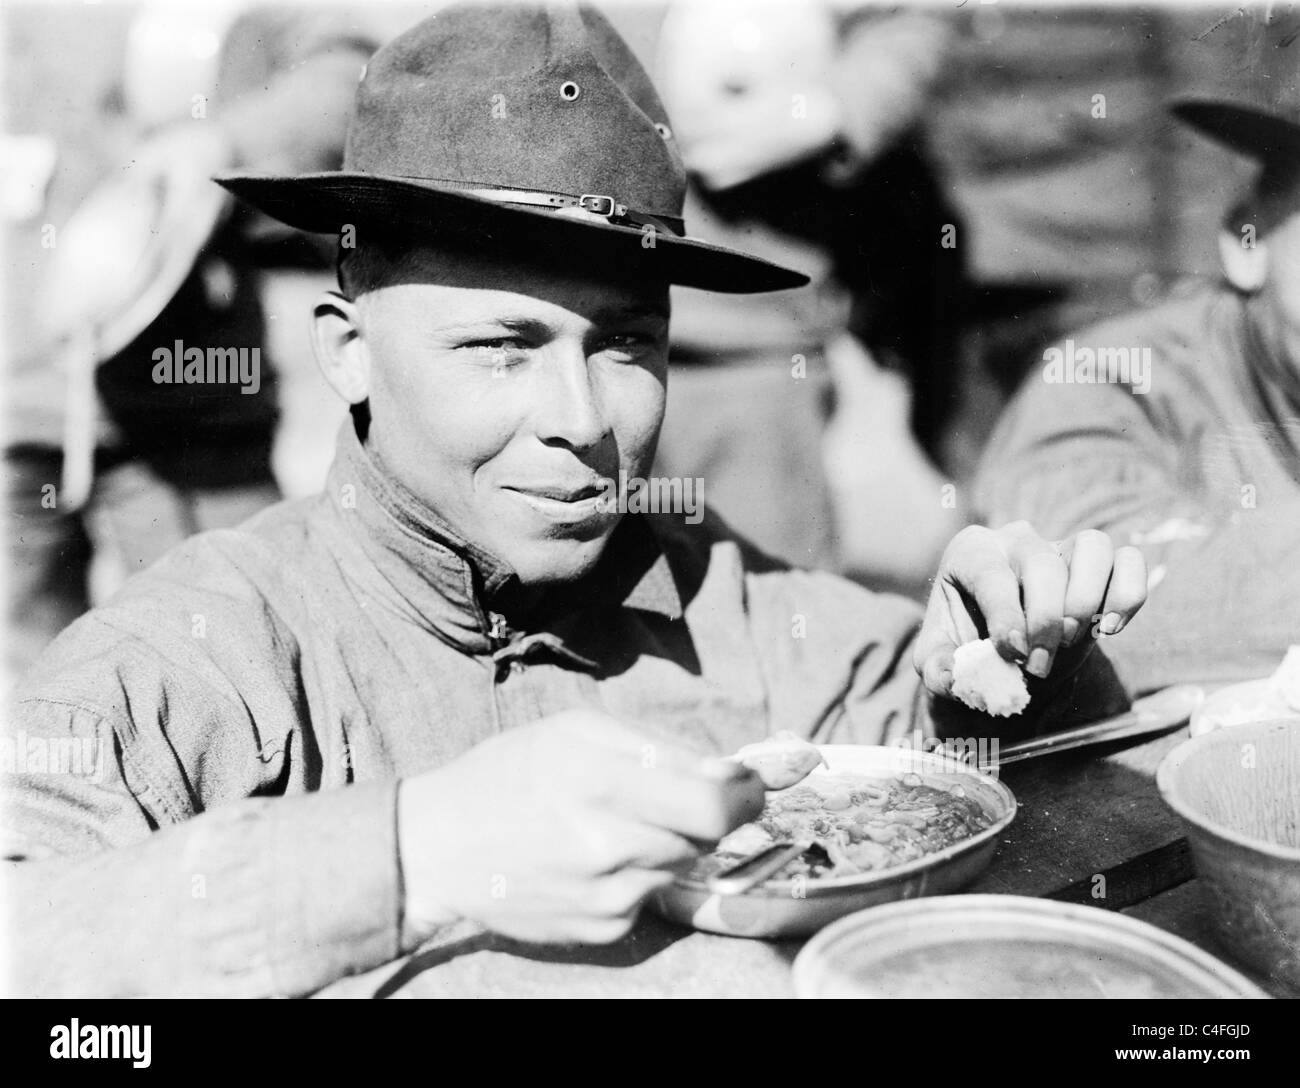 U.S. Army soldier eating - Stock Image